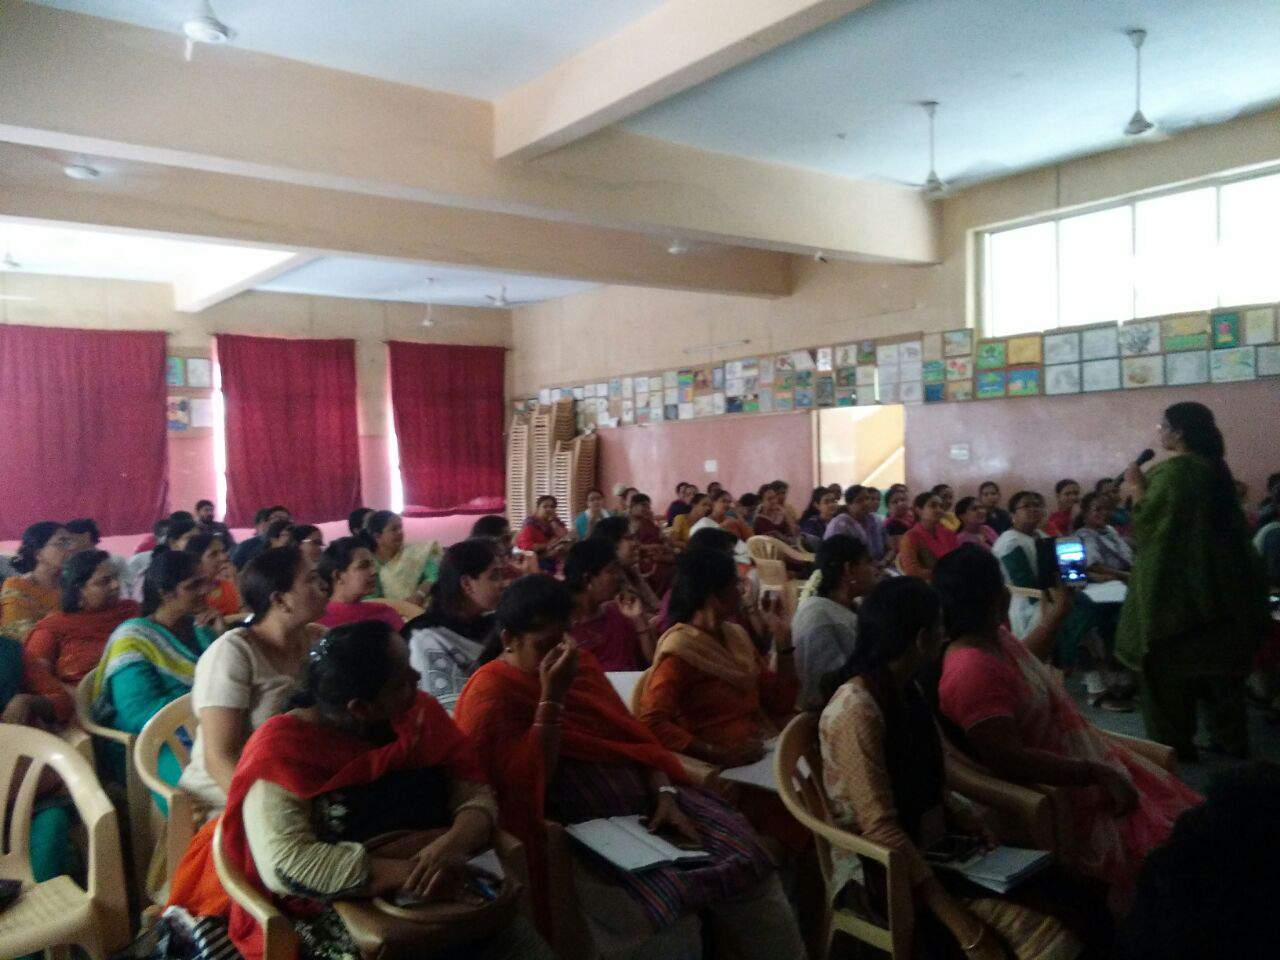 WORKSHOP ON DIFFERENTIATED CLASSROOM AND ENGAGING STUDENTS BY MRS. KALA MOHAN